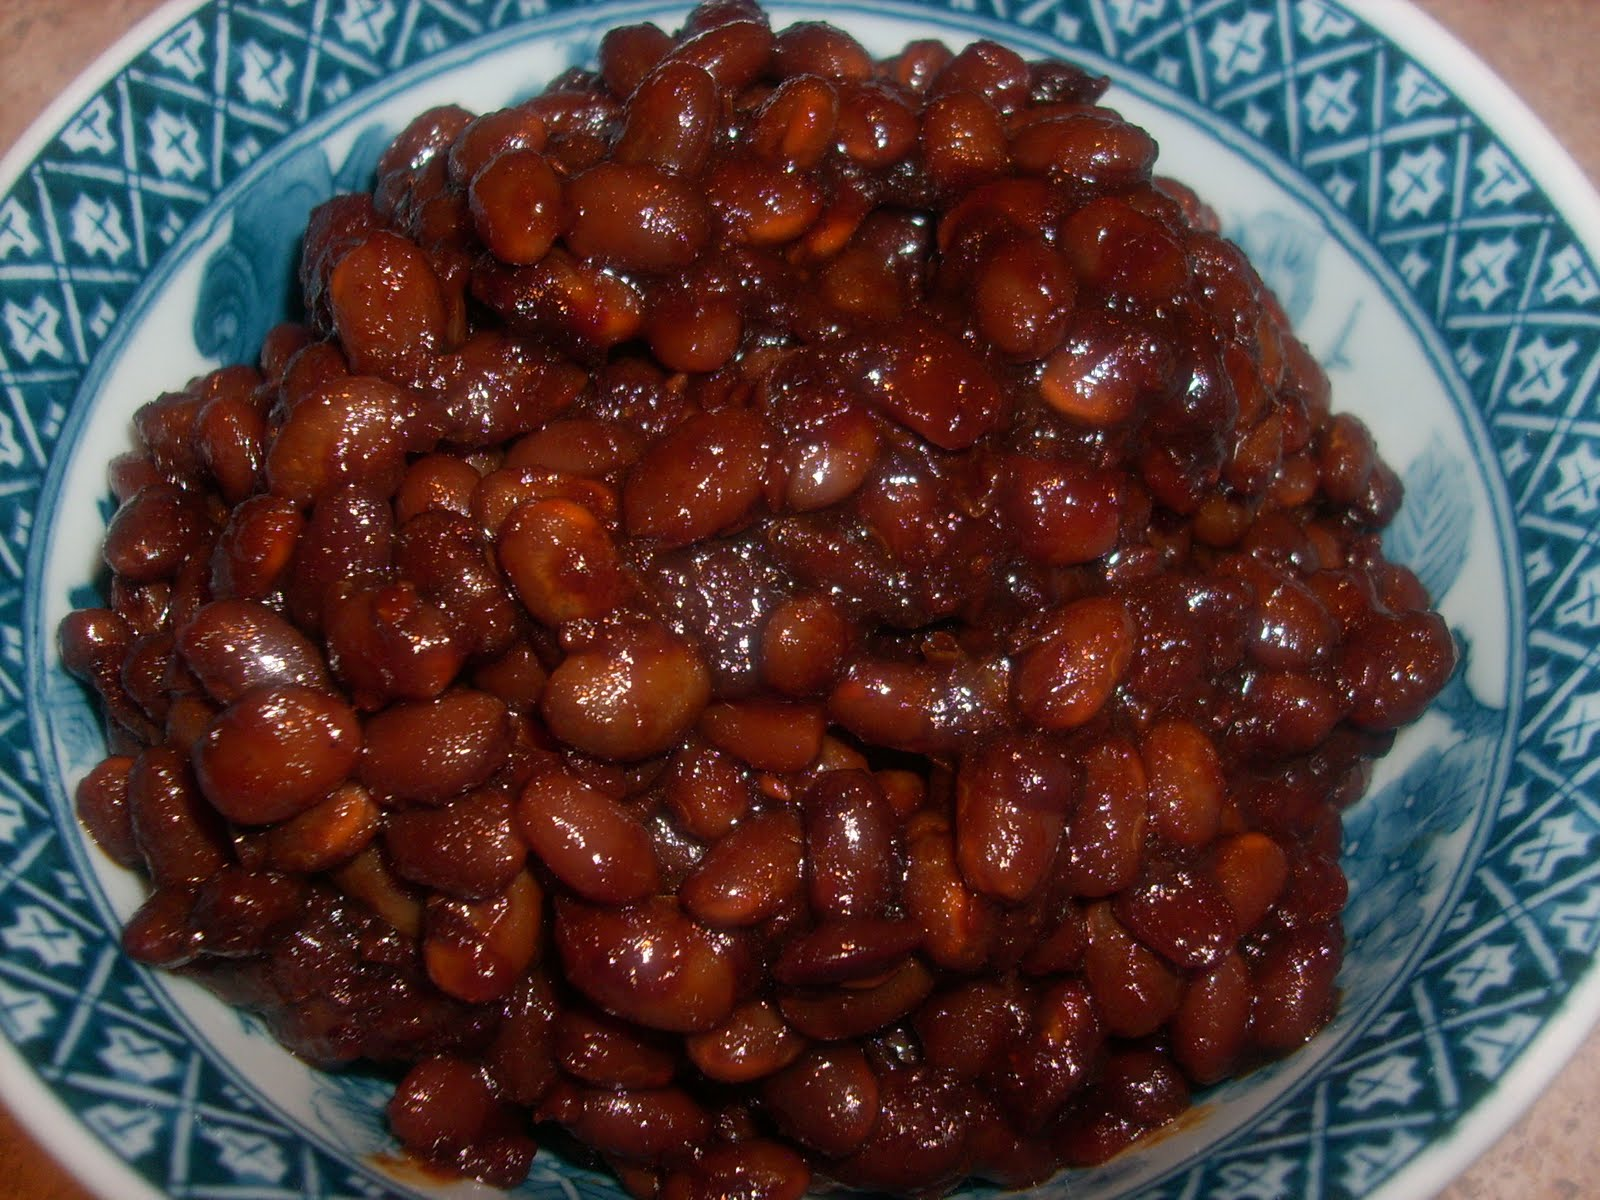 Cooking for Bliss: Boston Baked Beans